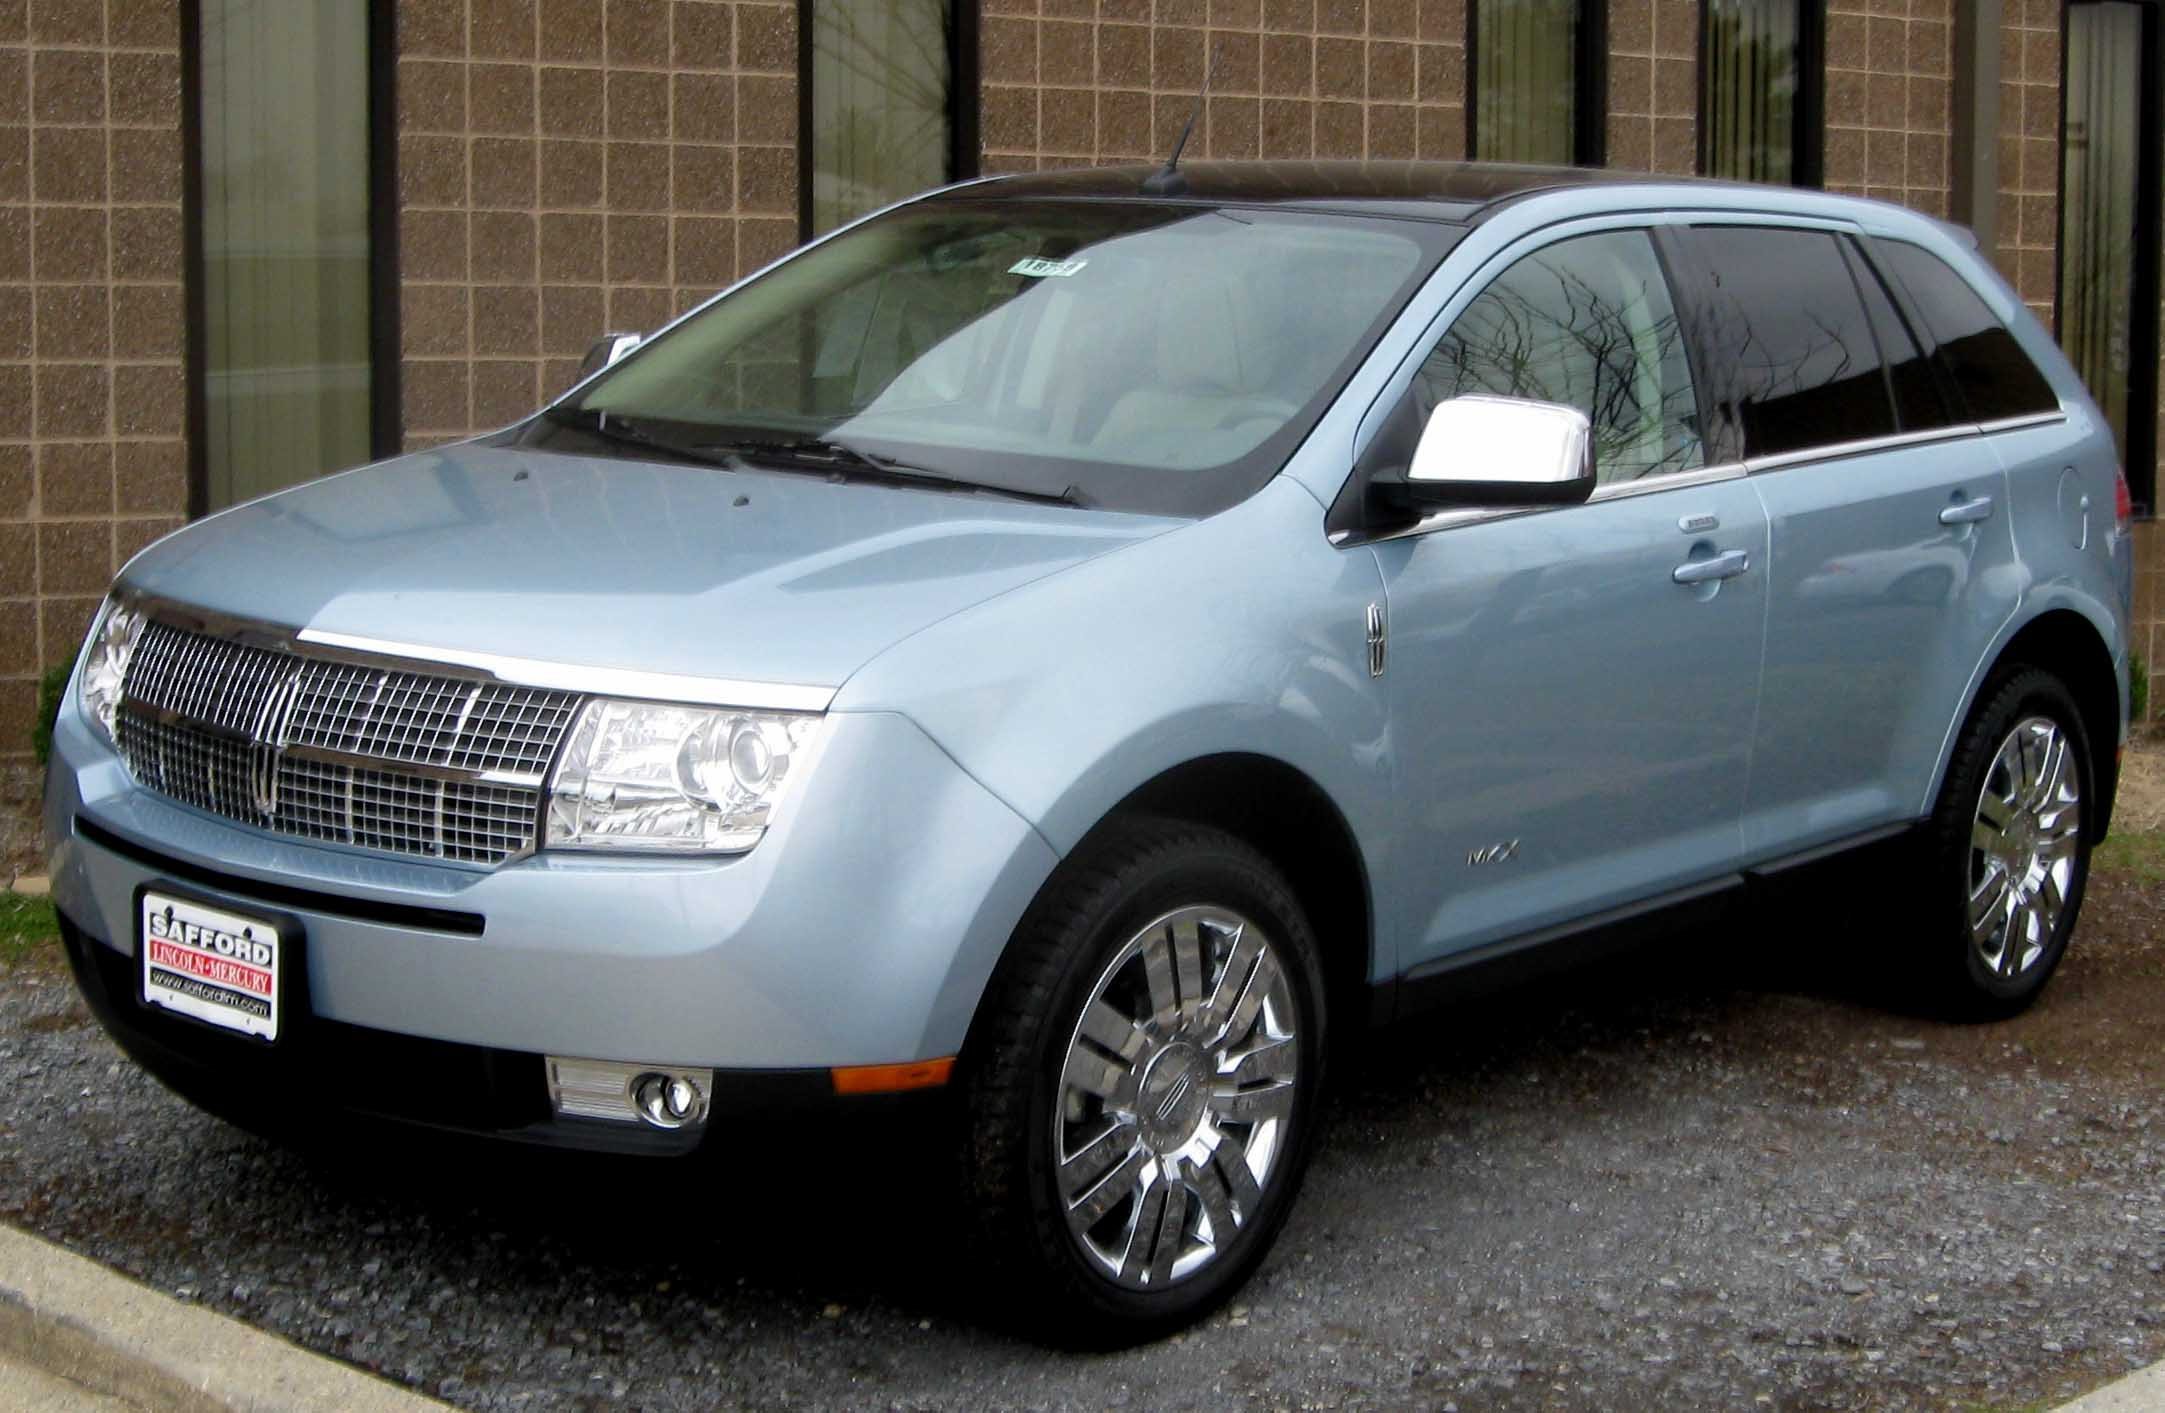 2009 Lincoln Mkx #1